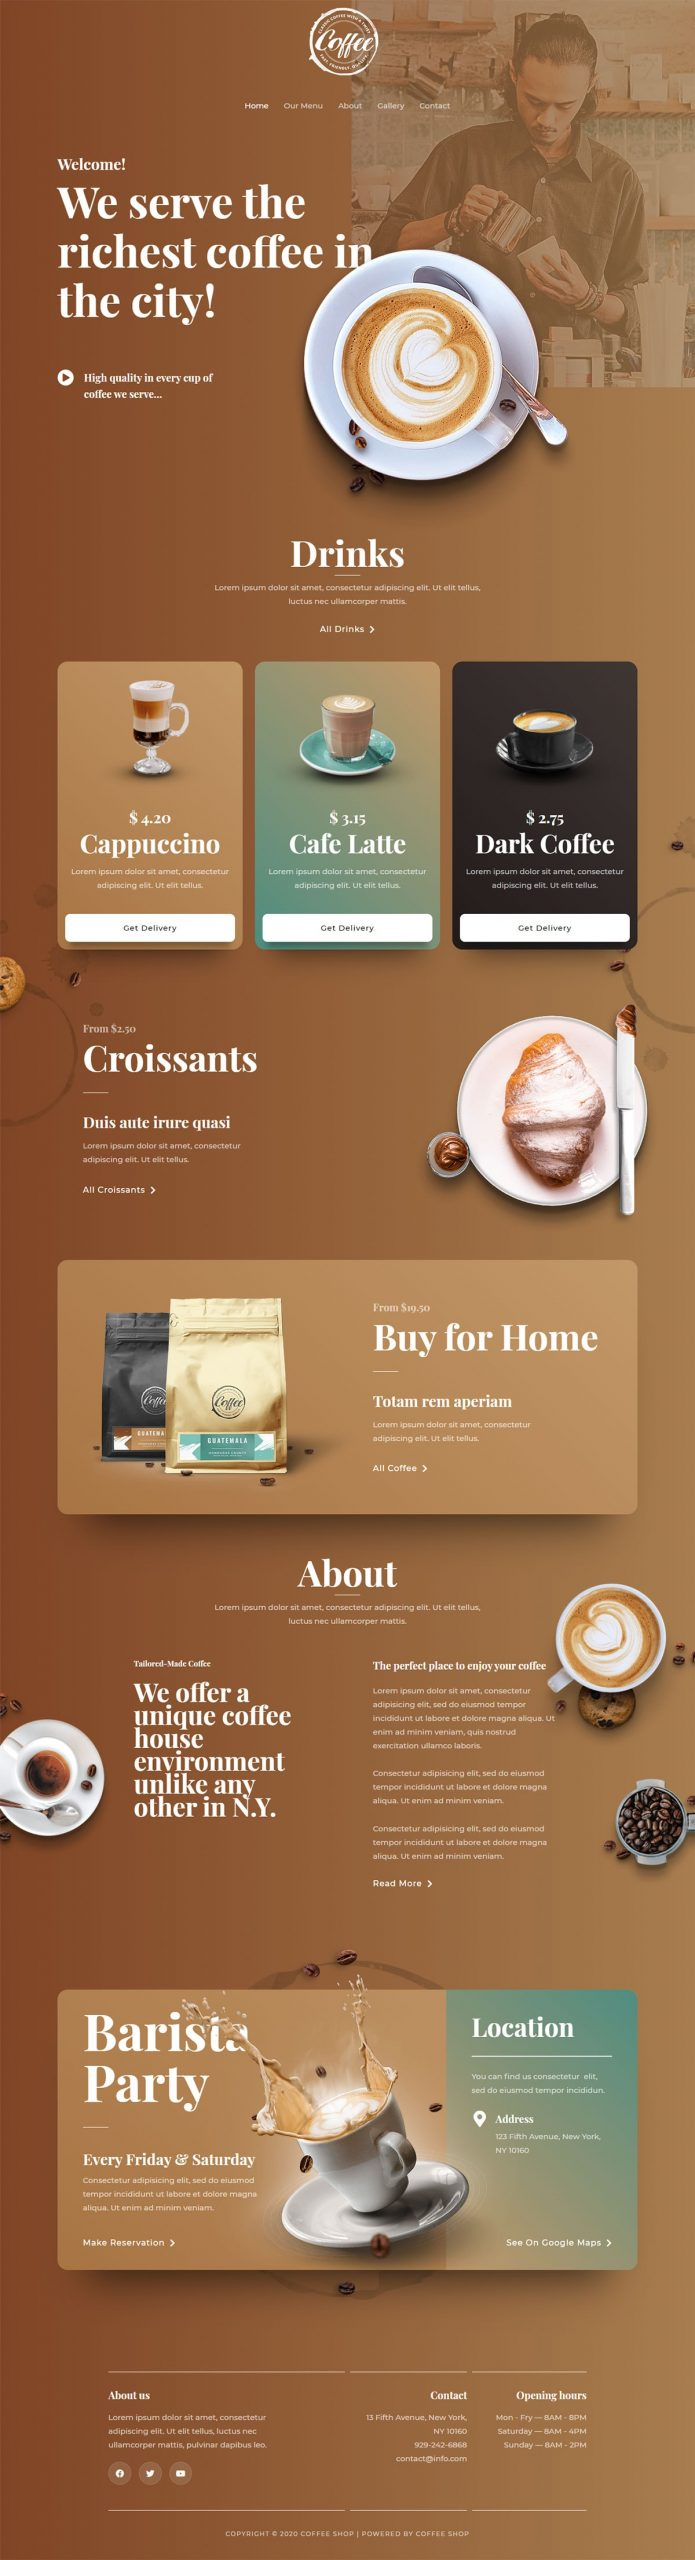 cheap web design by using pre-made templates